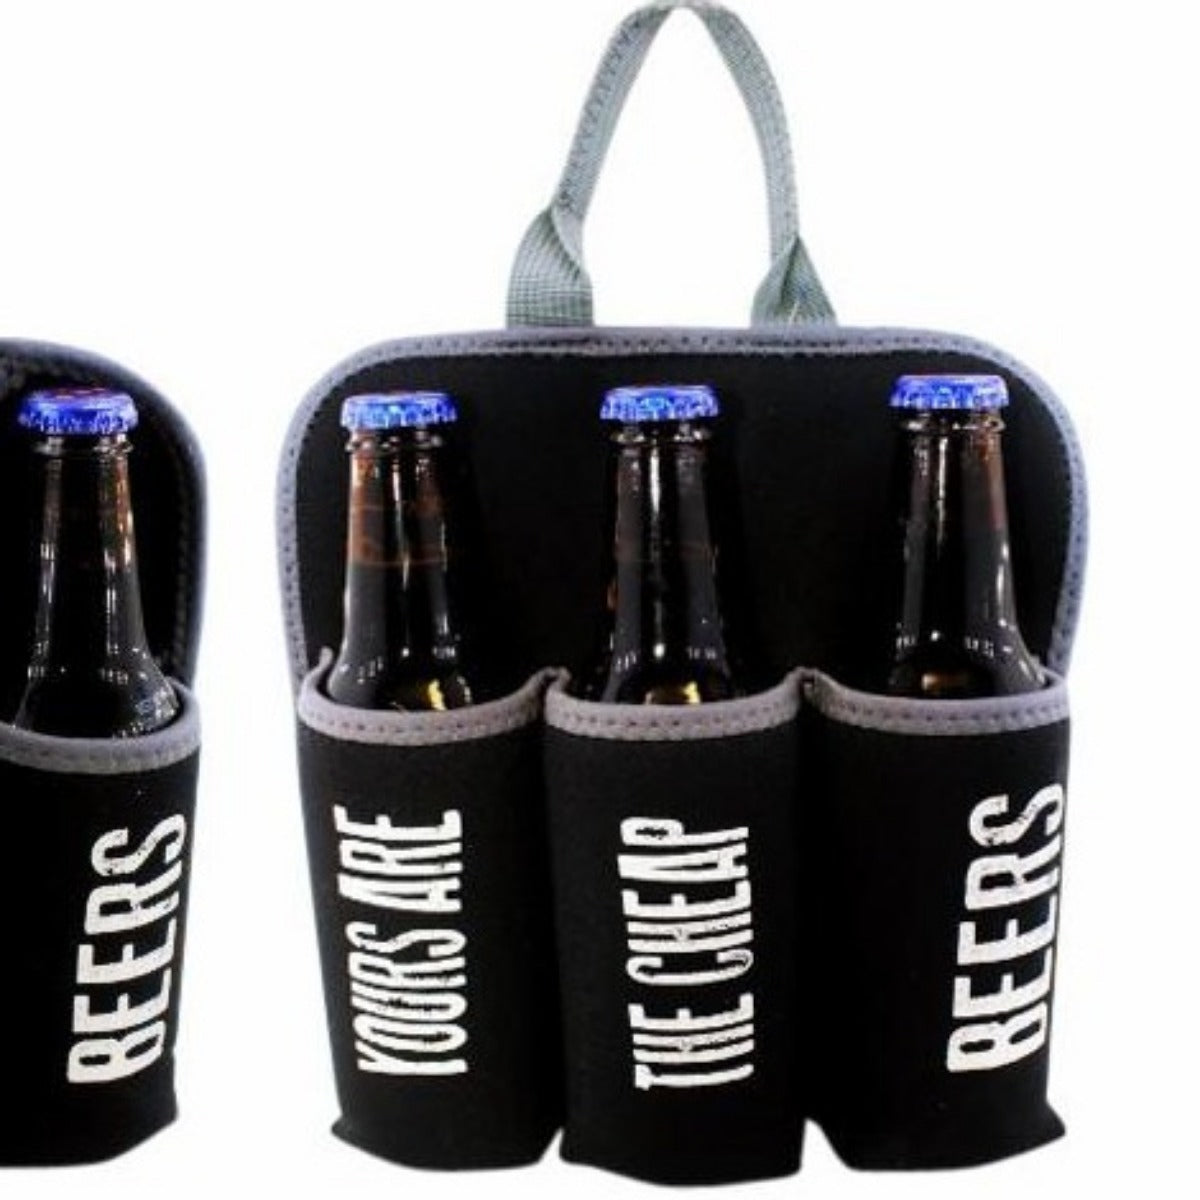 6 Pack Beer Holder by Moana Road